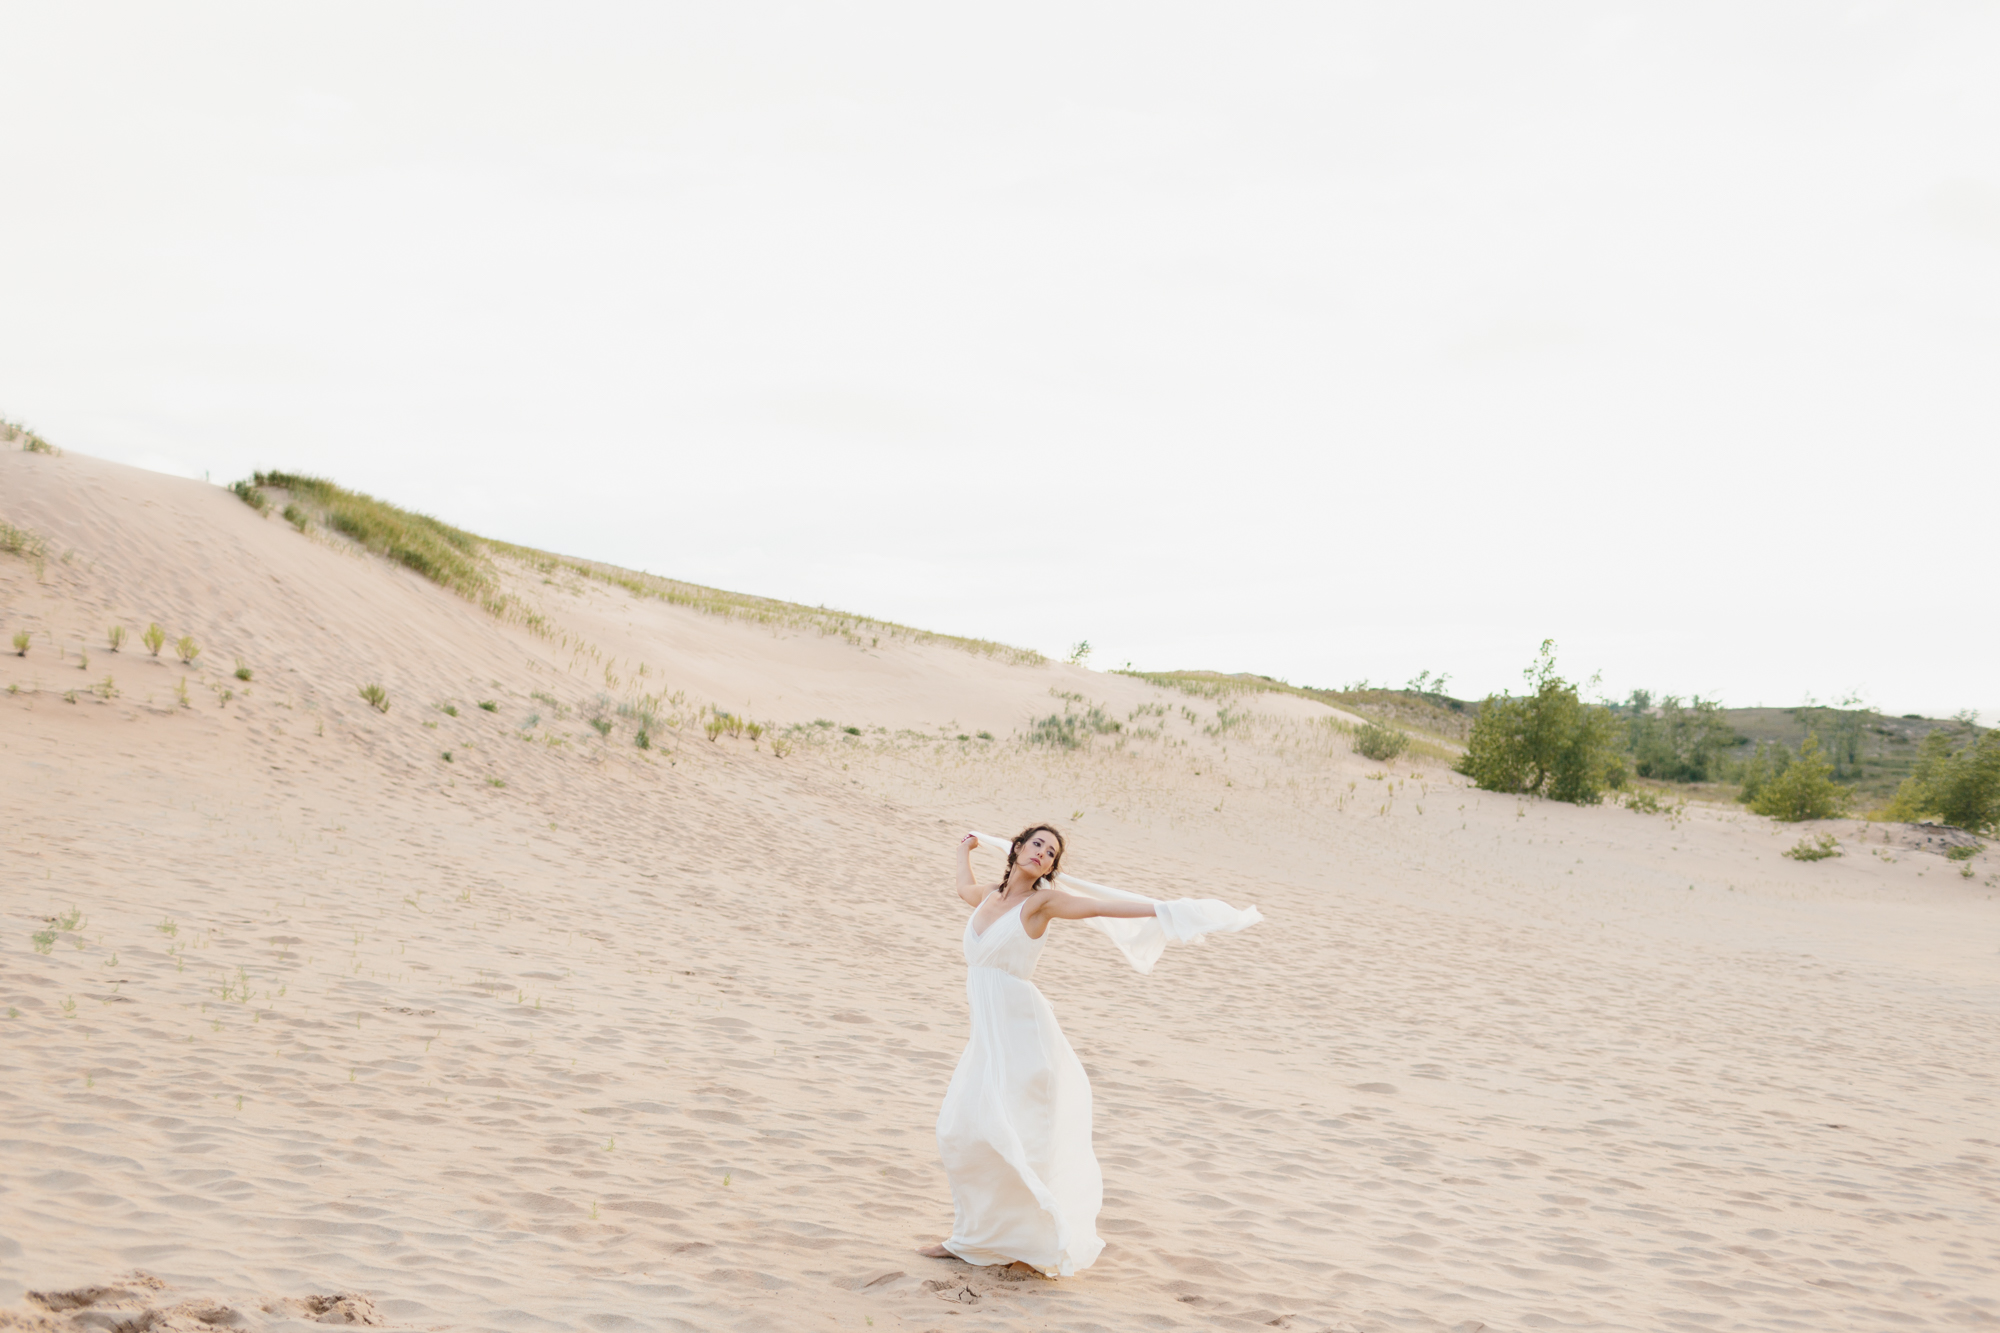 Sleeping Bear Dunes Bridal Portraits Wedding Photographer Mae Stier-041.jpg